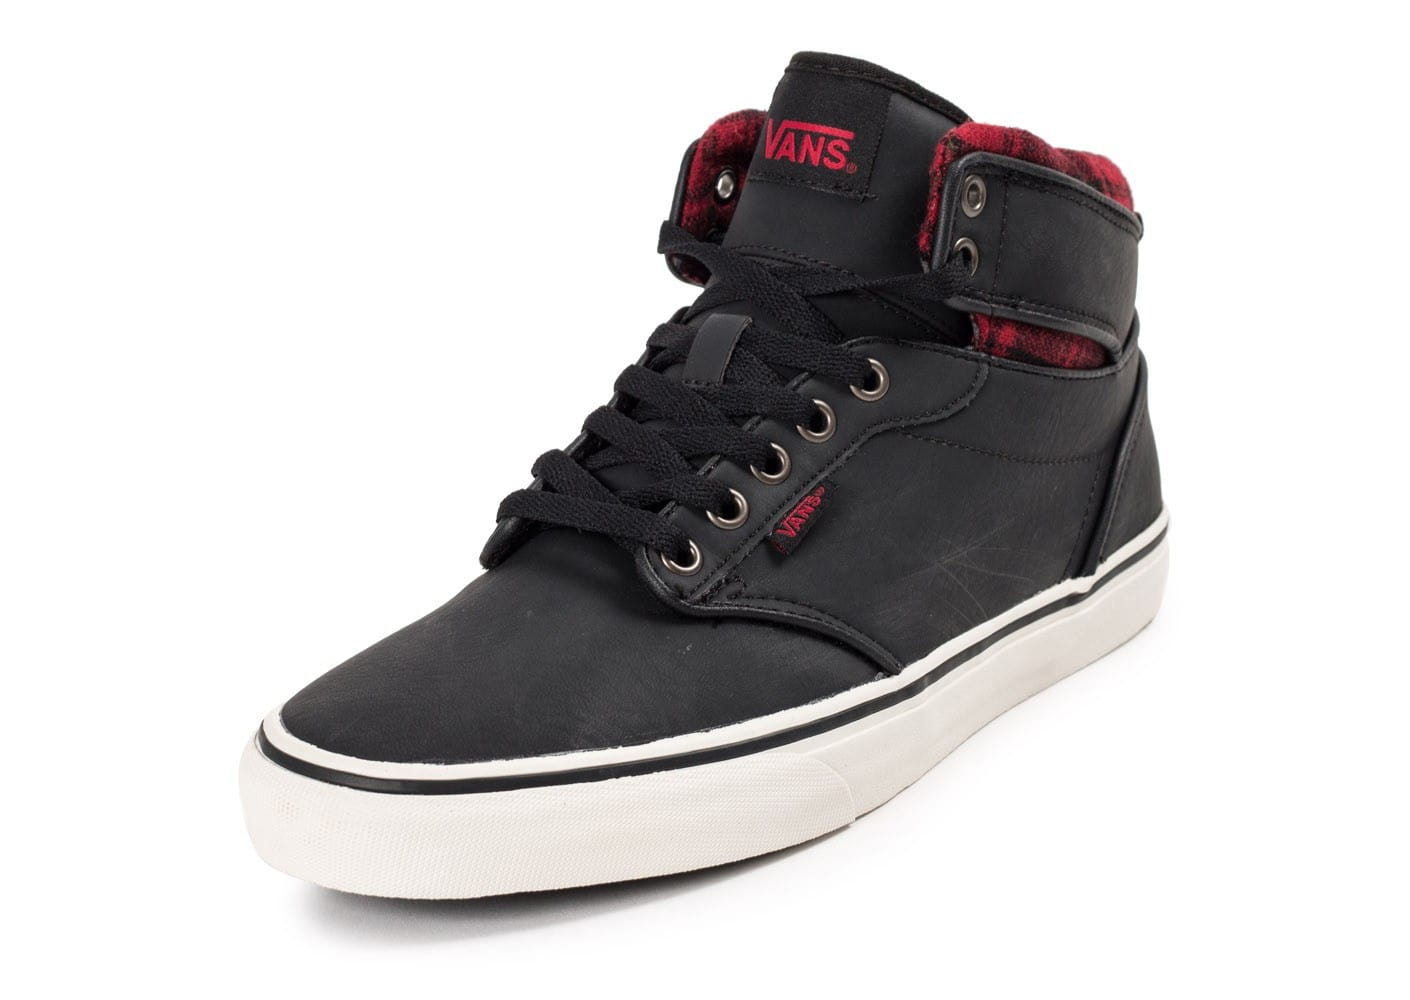 soldes vans atwood hi leather noire chaussures homme chausport. Black Bedroom Furniture Sets. Home Design Ideas